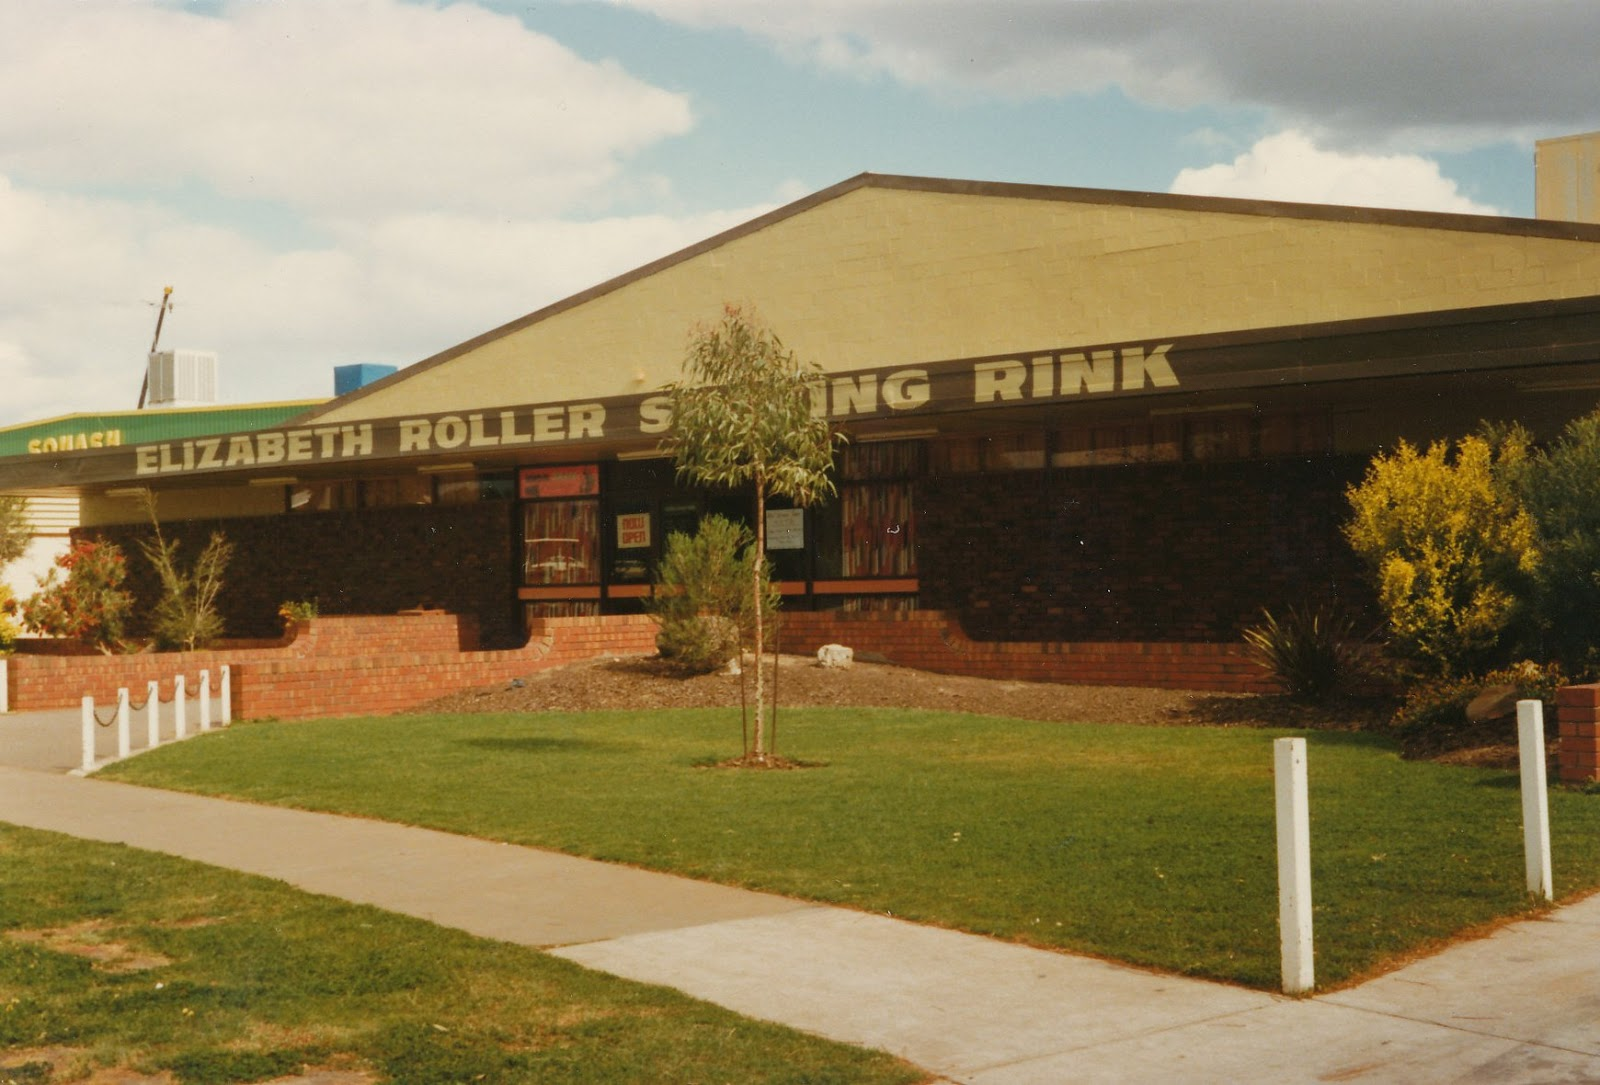 Playford\'s Past: Elizabeth Roller Skating Rink